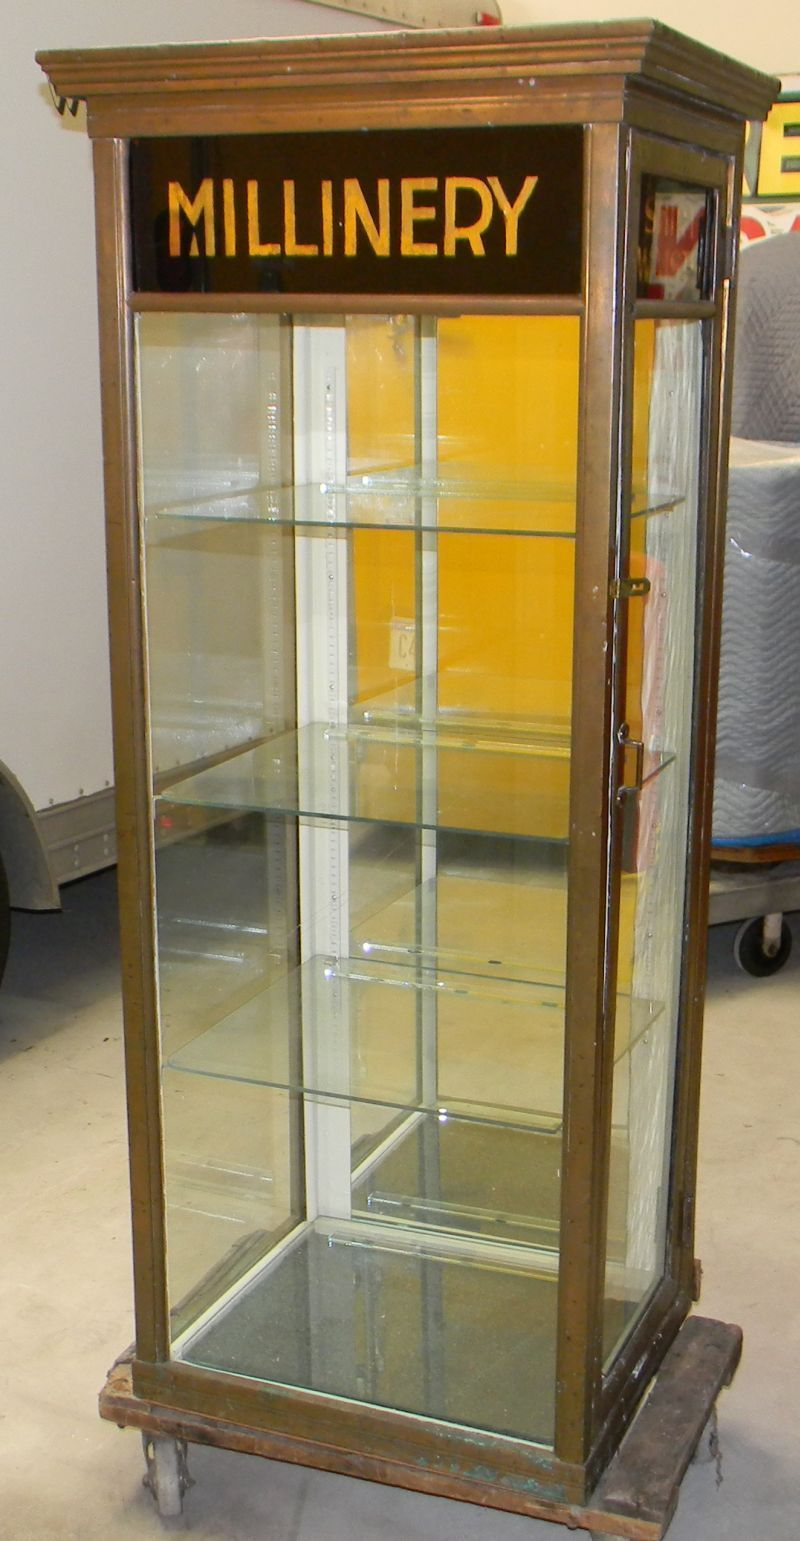 http://i.ebayimg.com/t/1900s-Department-Store-Copper-Display-Case ...